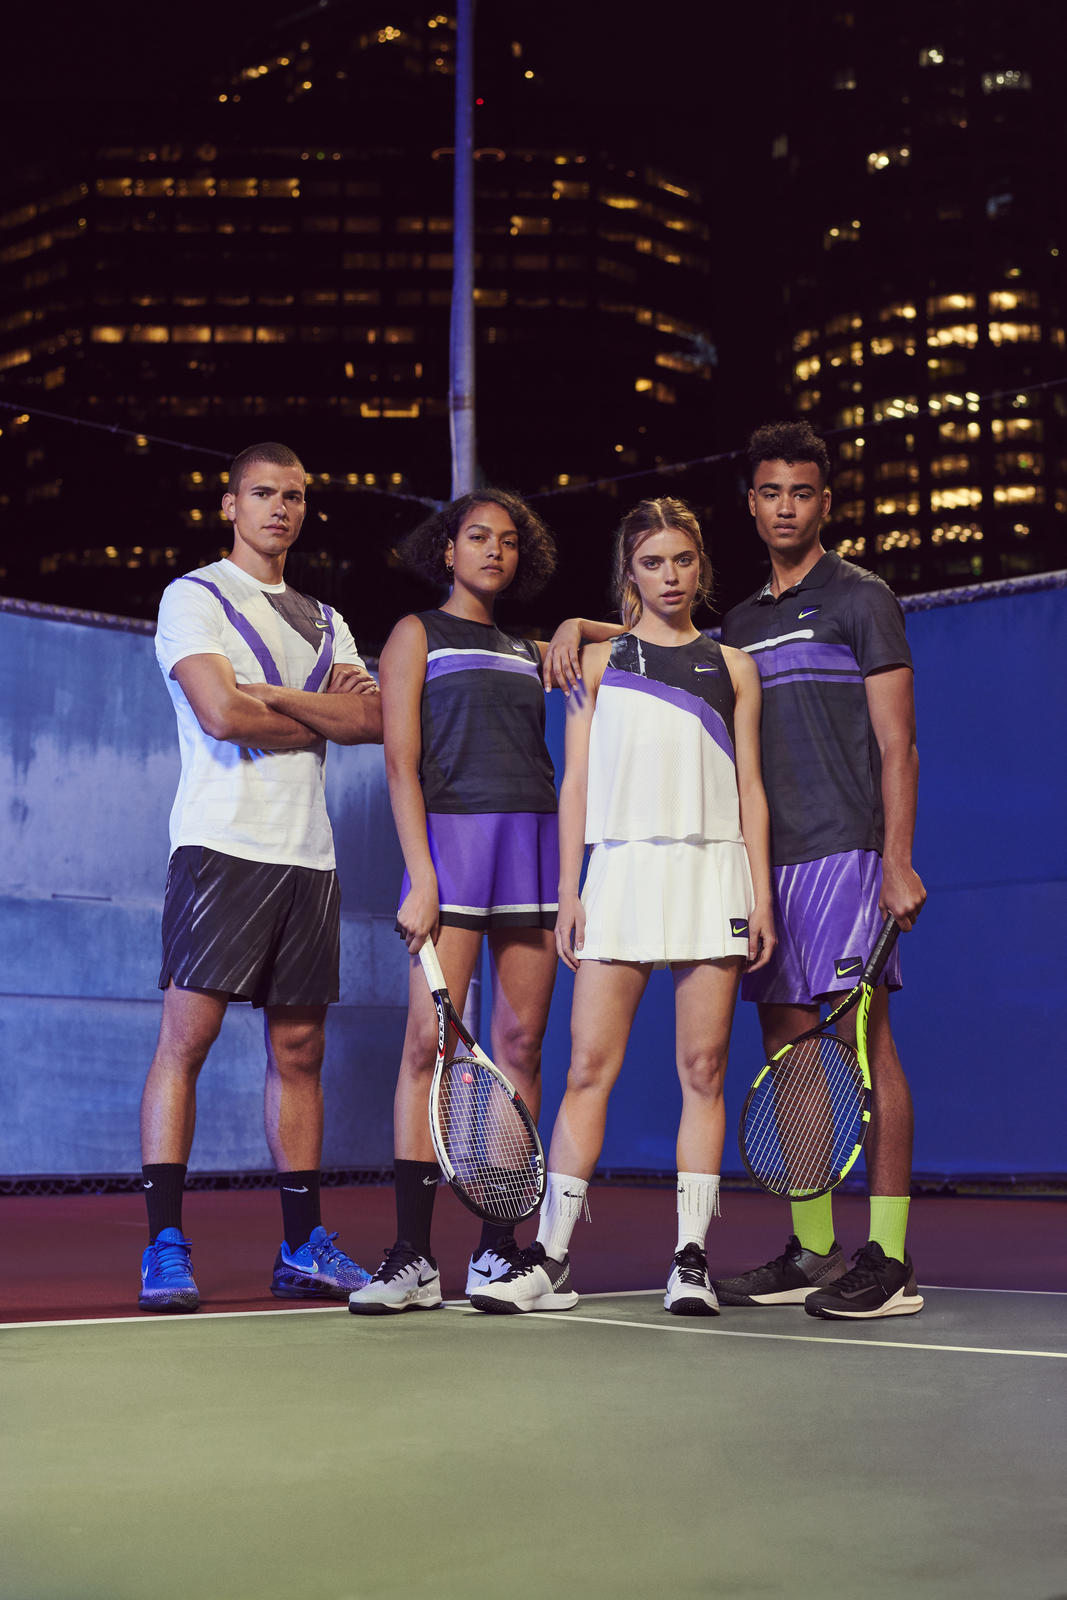 Nikecourt Us Open 2019 Collection Tennis Connected